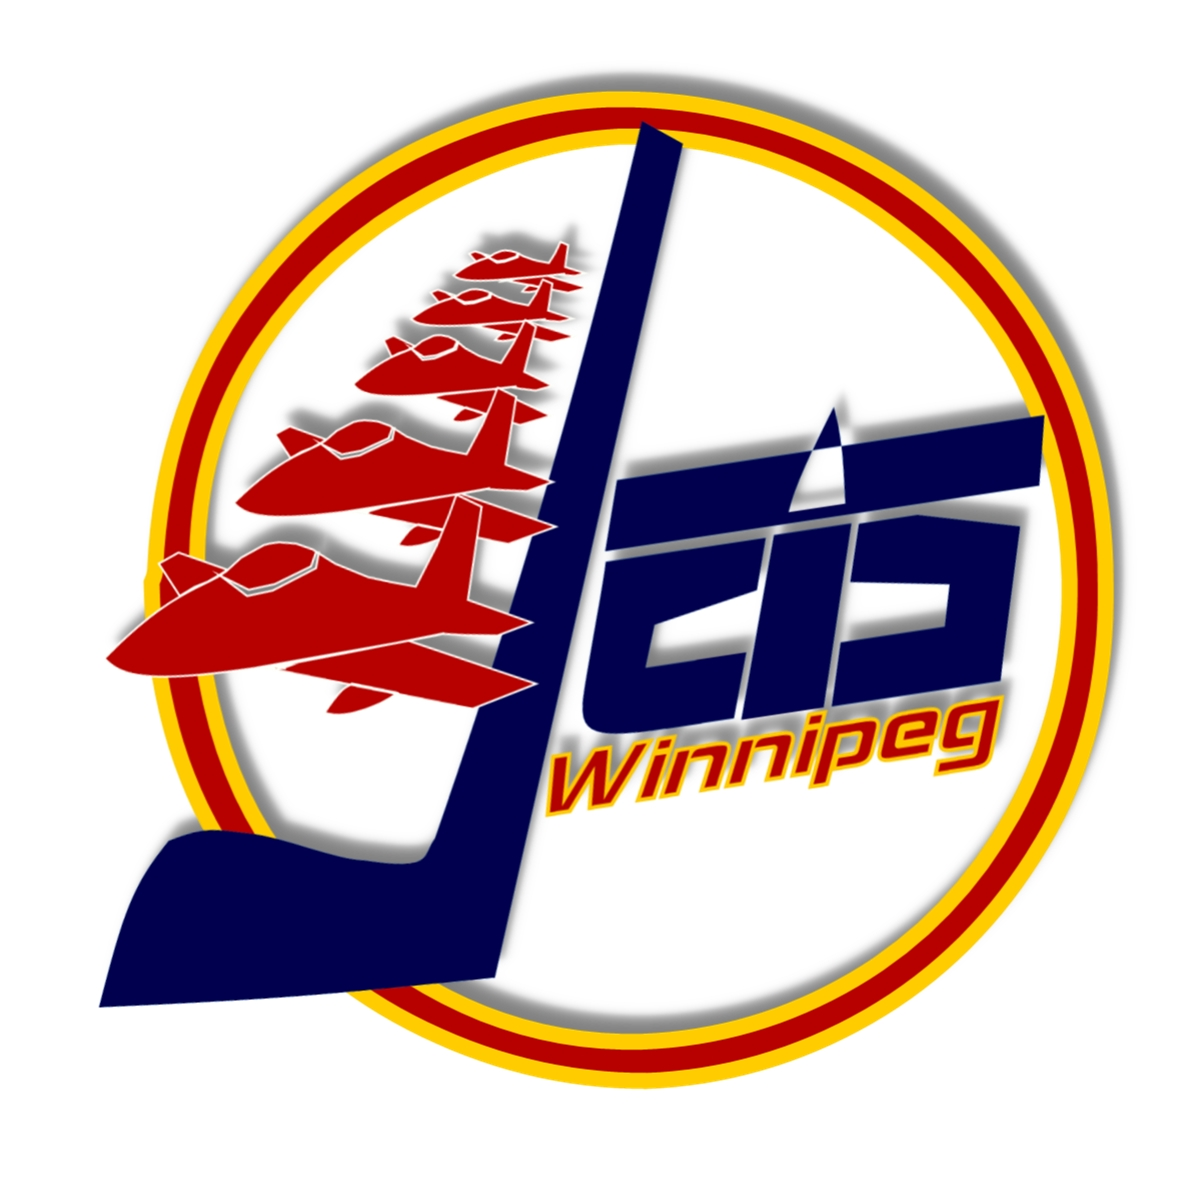 Logo Design by Joseph calunsag Cagaanan - Entry No. 34 in the Logo Design Contest Winnipeg Jets Logo Design Contest.